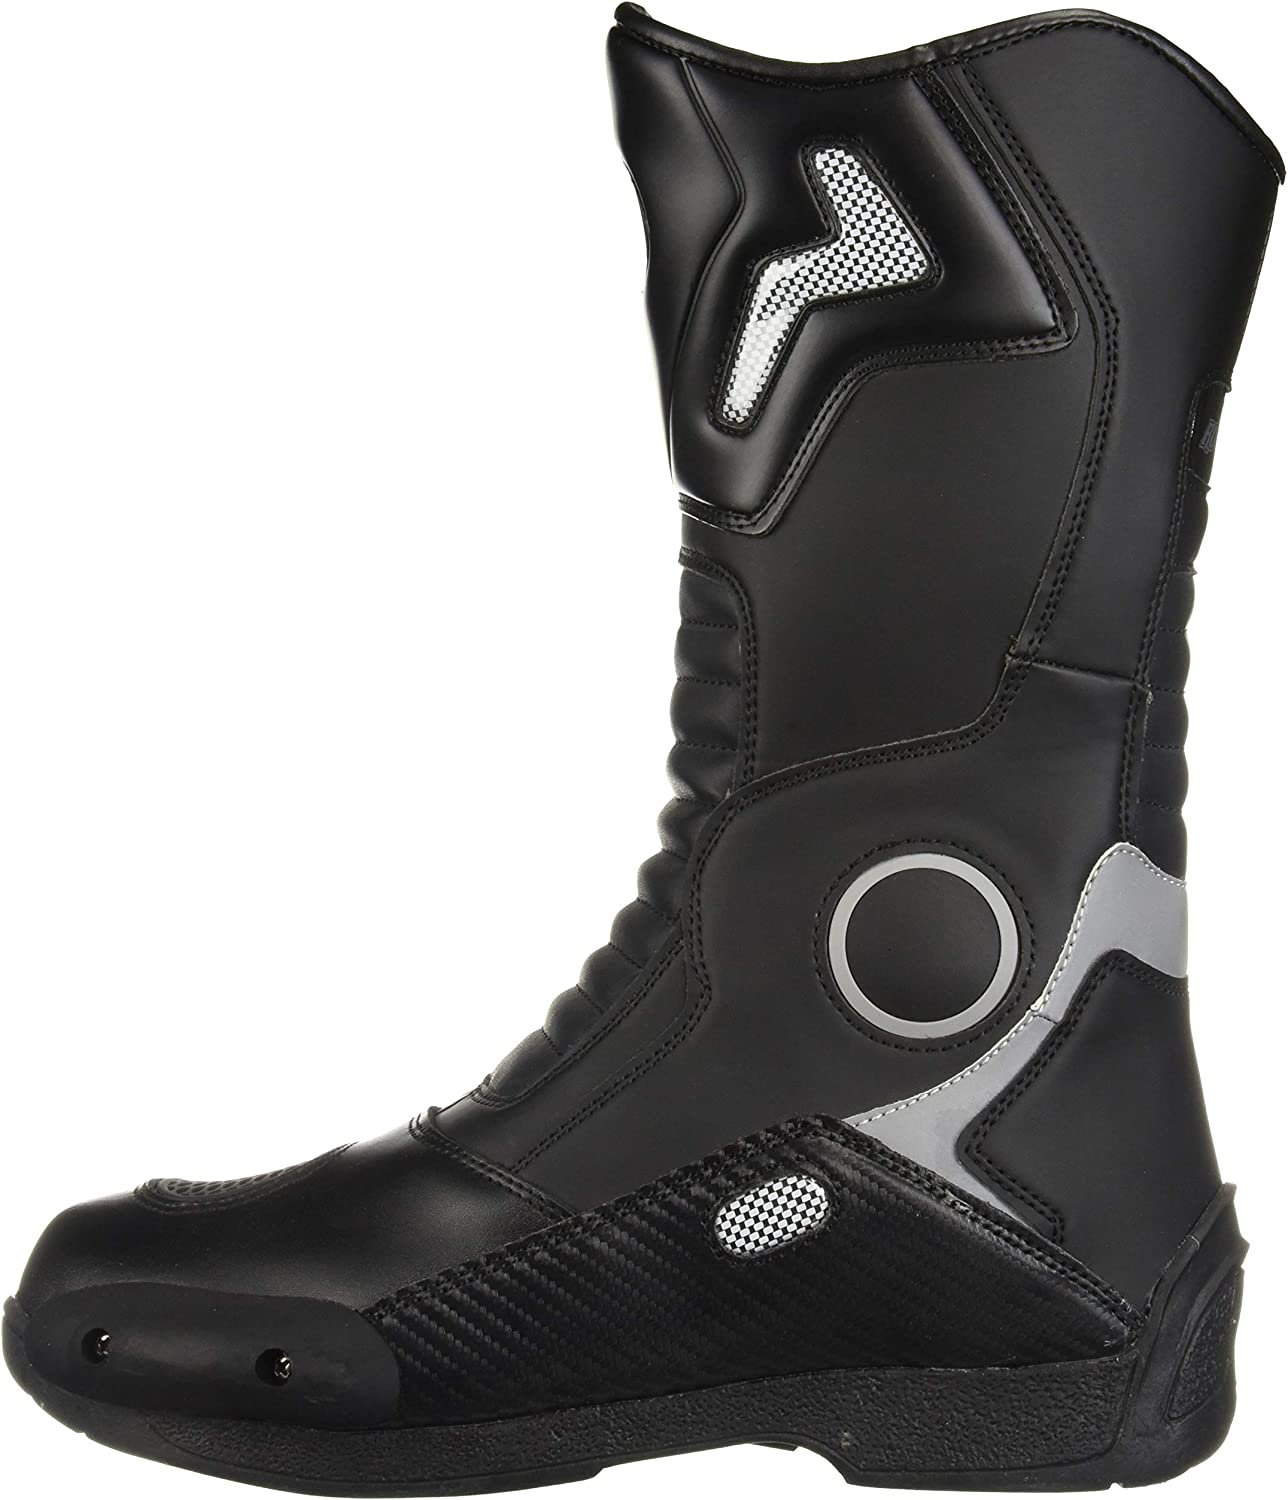 Joe Rocket Mens Water Resistant Touring Boot White, US Size 8